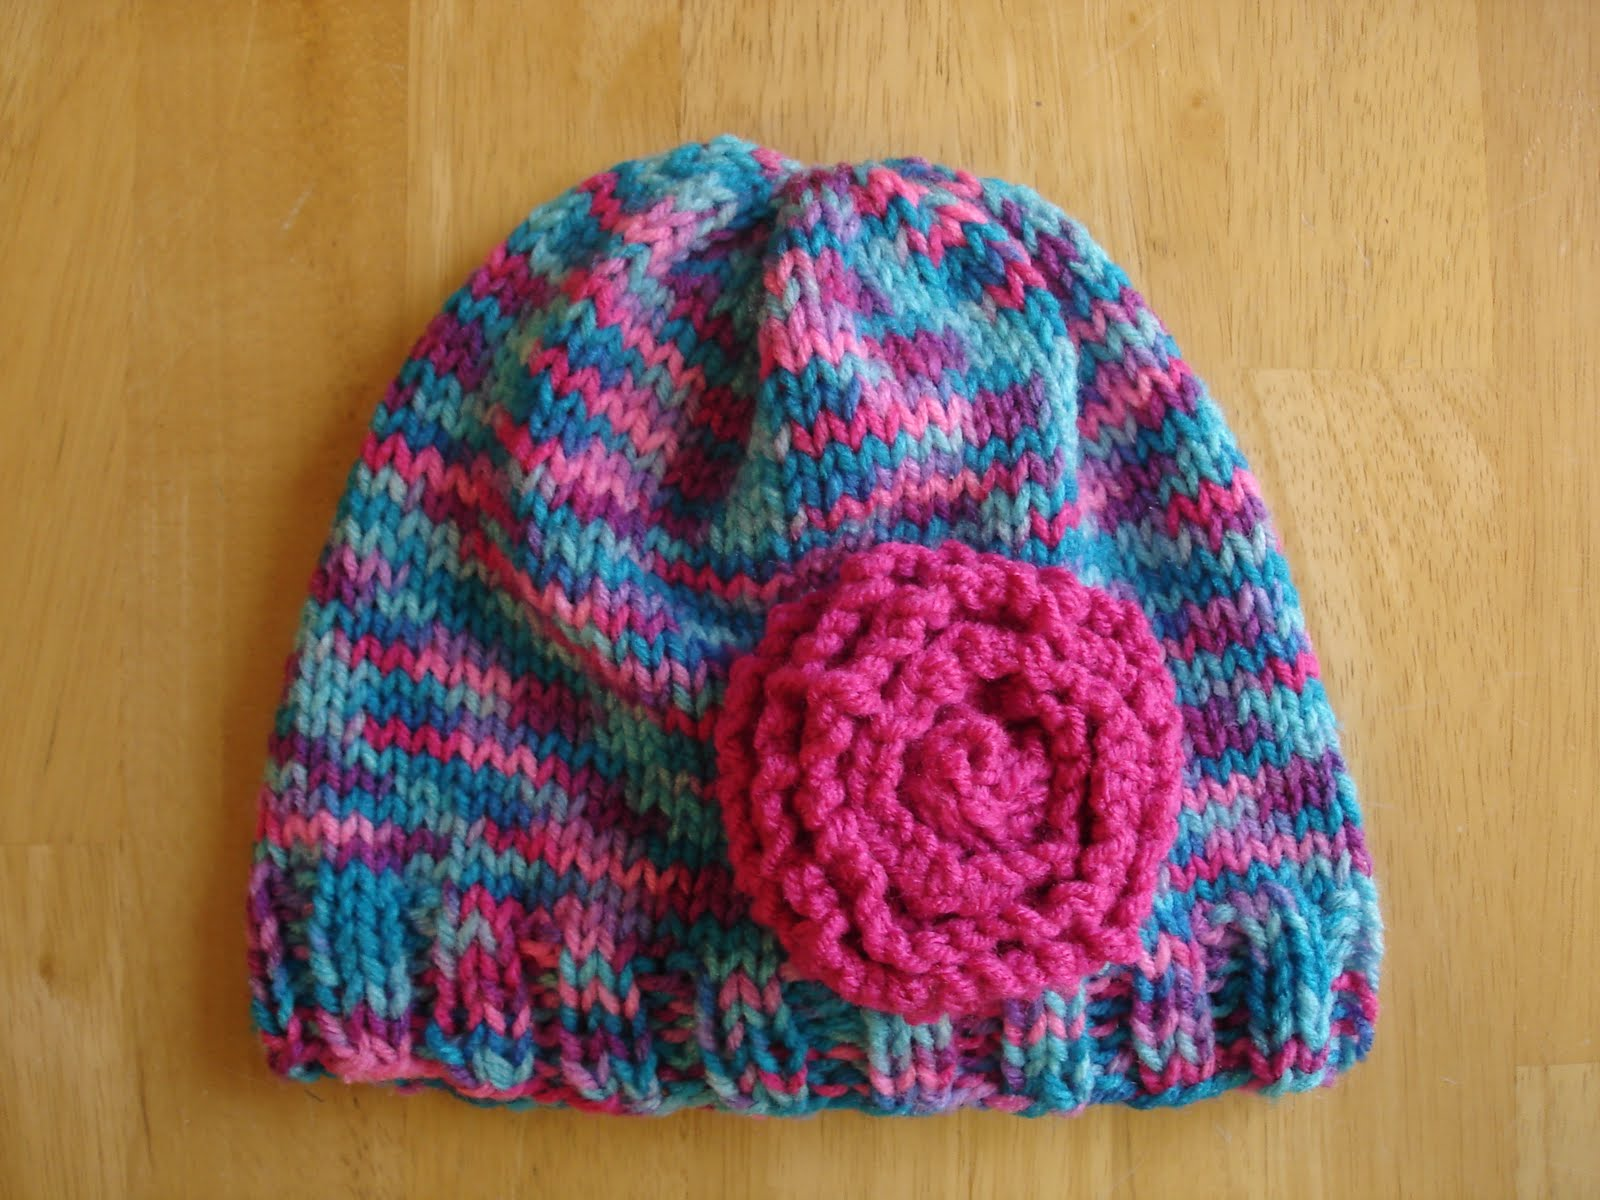 Easy Knitting Patterns For Toddler Hats : Fiber Flux: Free Knitting Pattern...Baby Doll Hats!